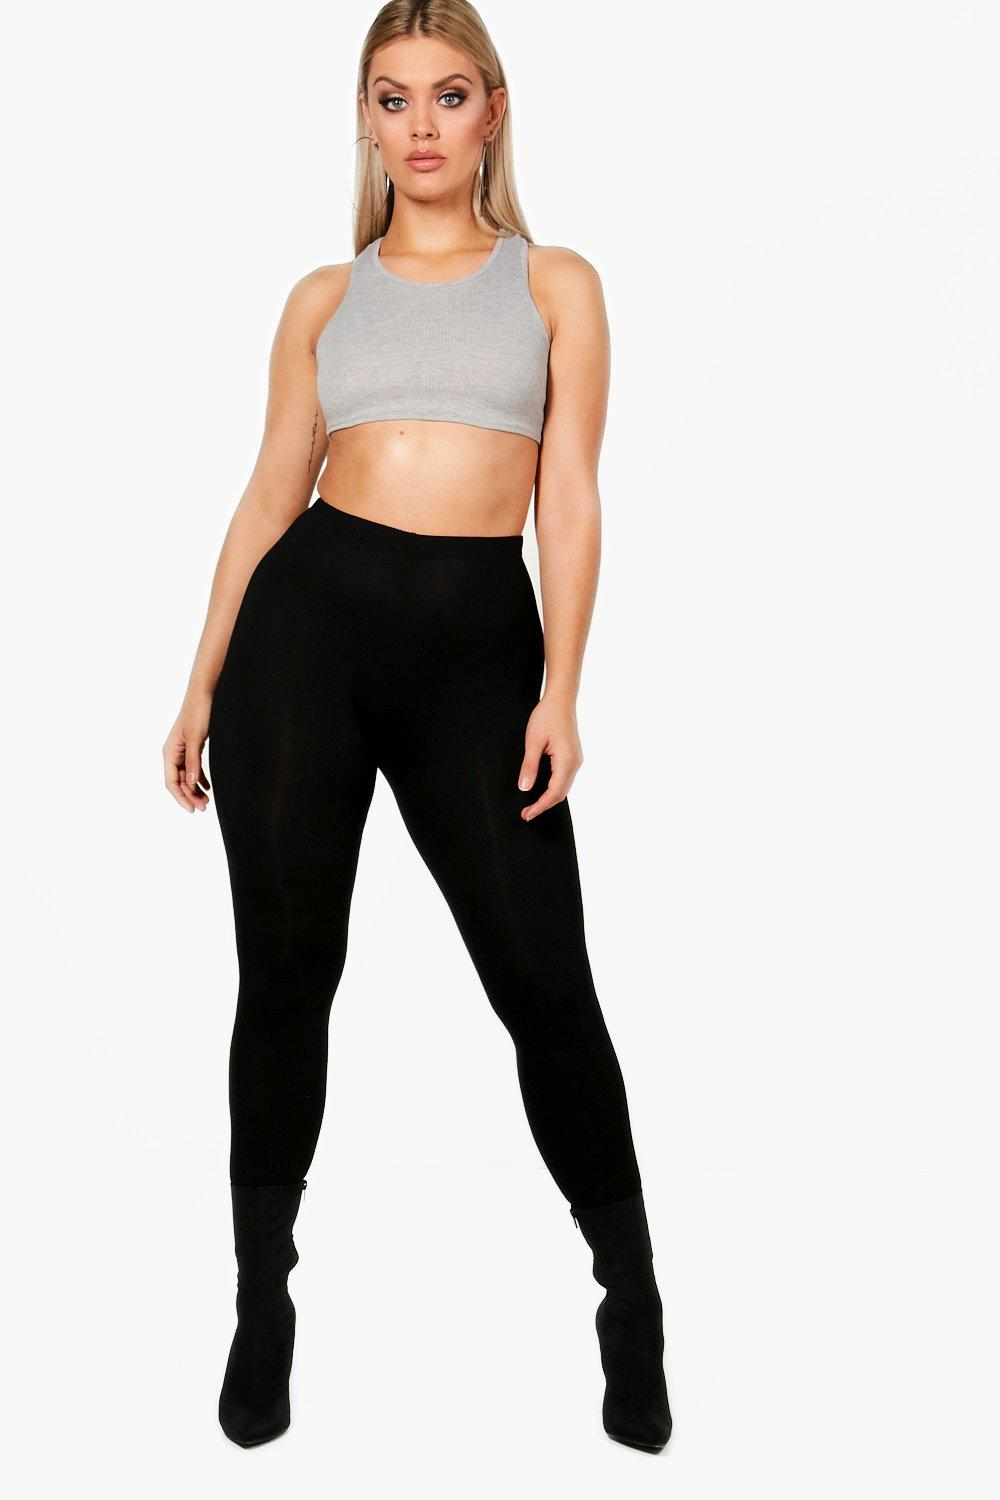 Legging Plus Basic Plus black Basic black Plus Legging xY7Pq7wSH